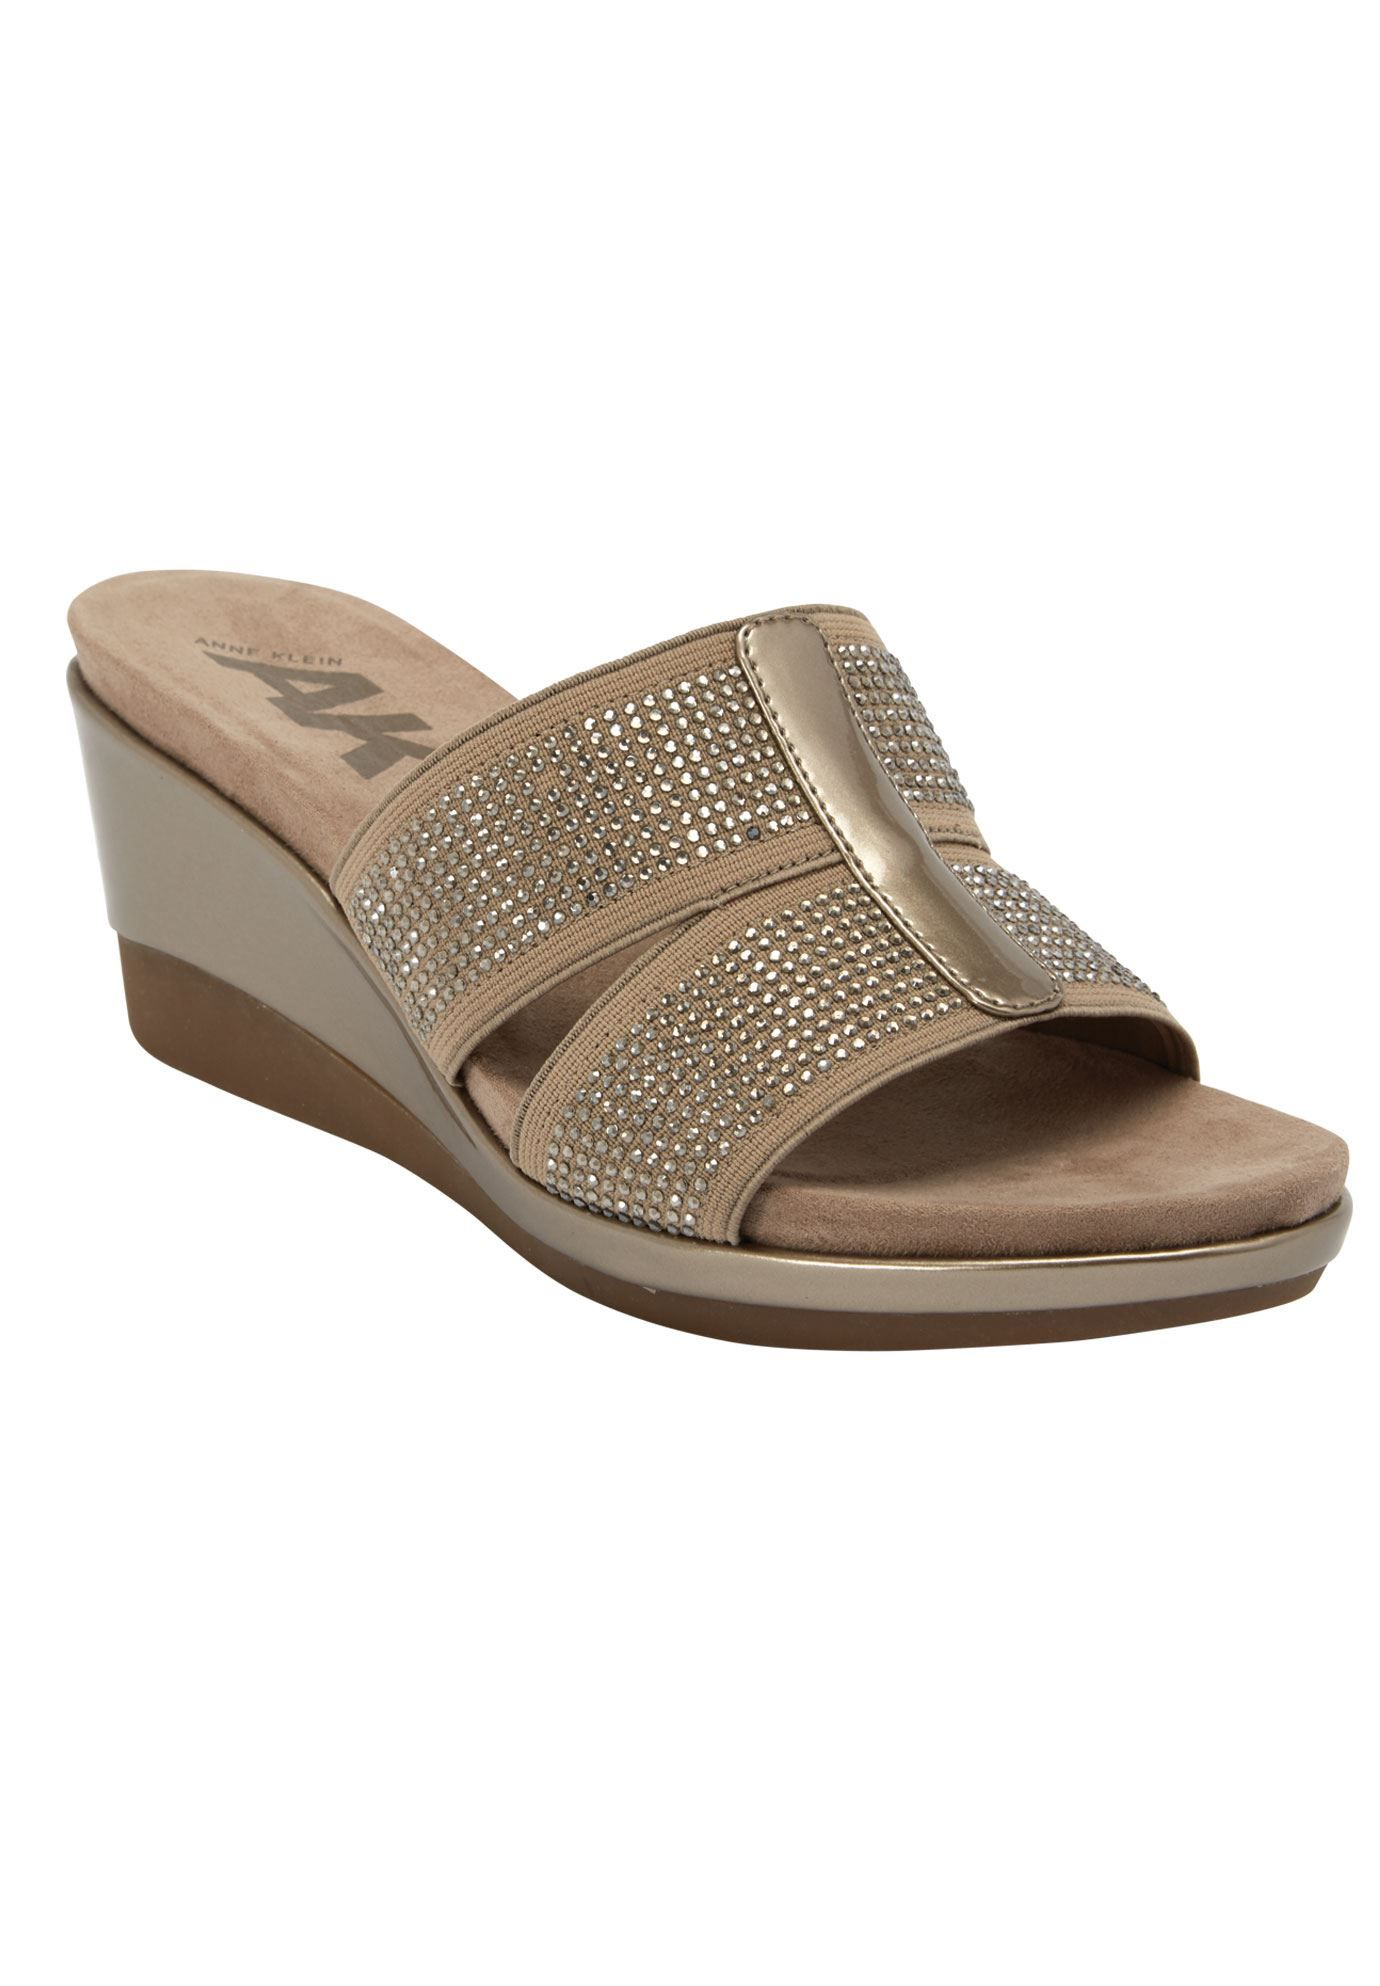 f7762b576a9f Pallace Wedge Sandals by Anne Klein - Women s Plus Size Clothing ...